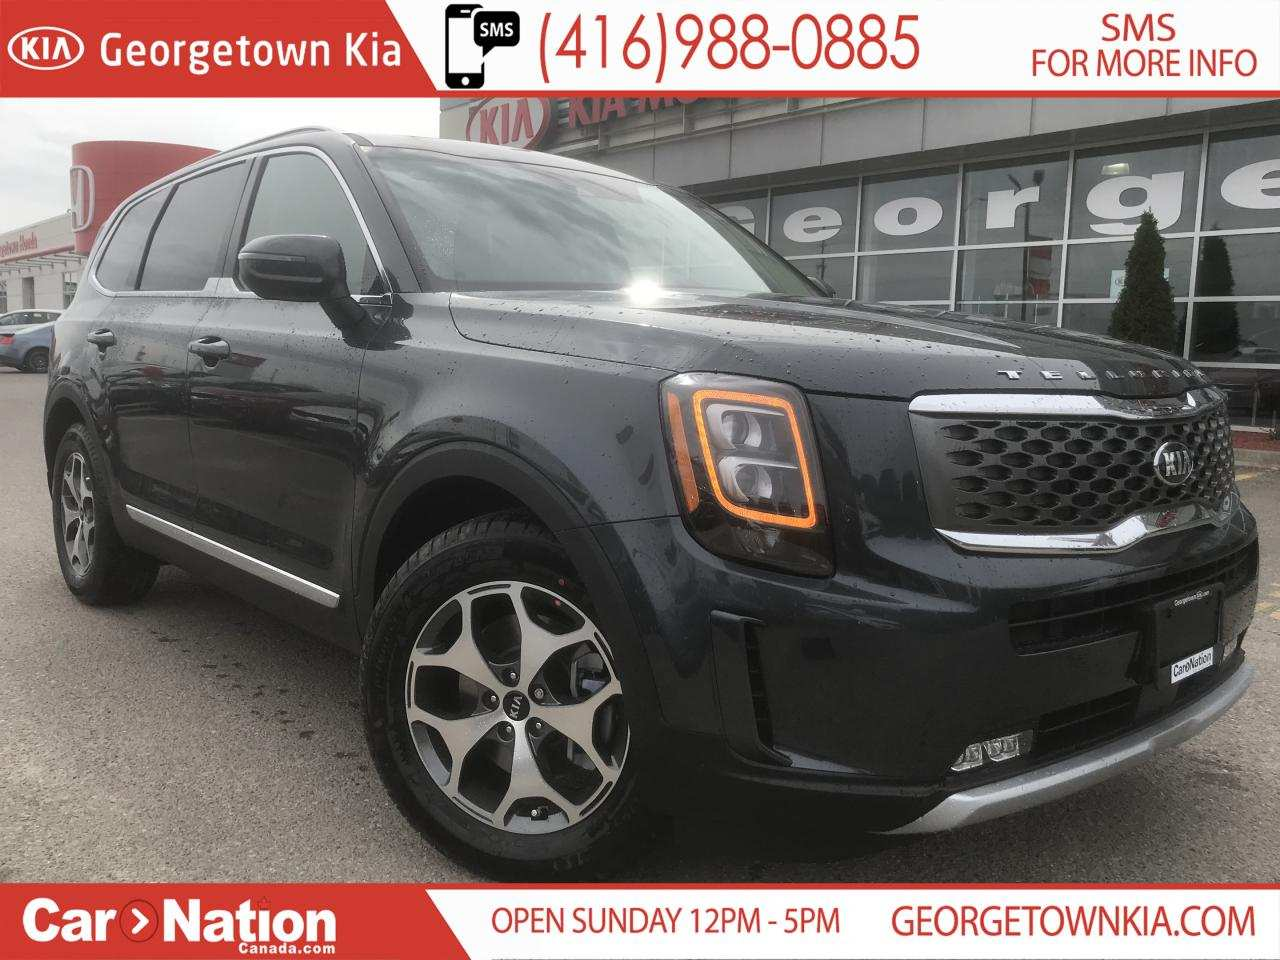 24 New Used 2020 Kia Telluride Review with Used 2020 Kia Telluride